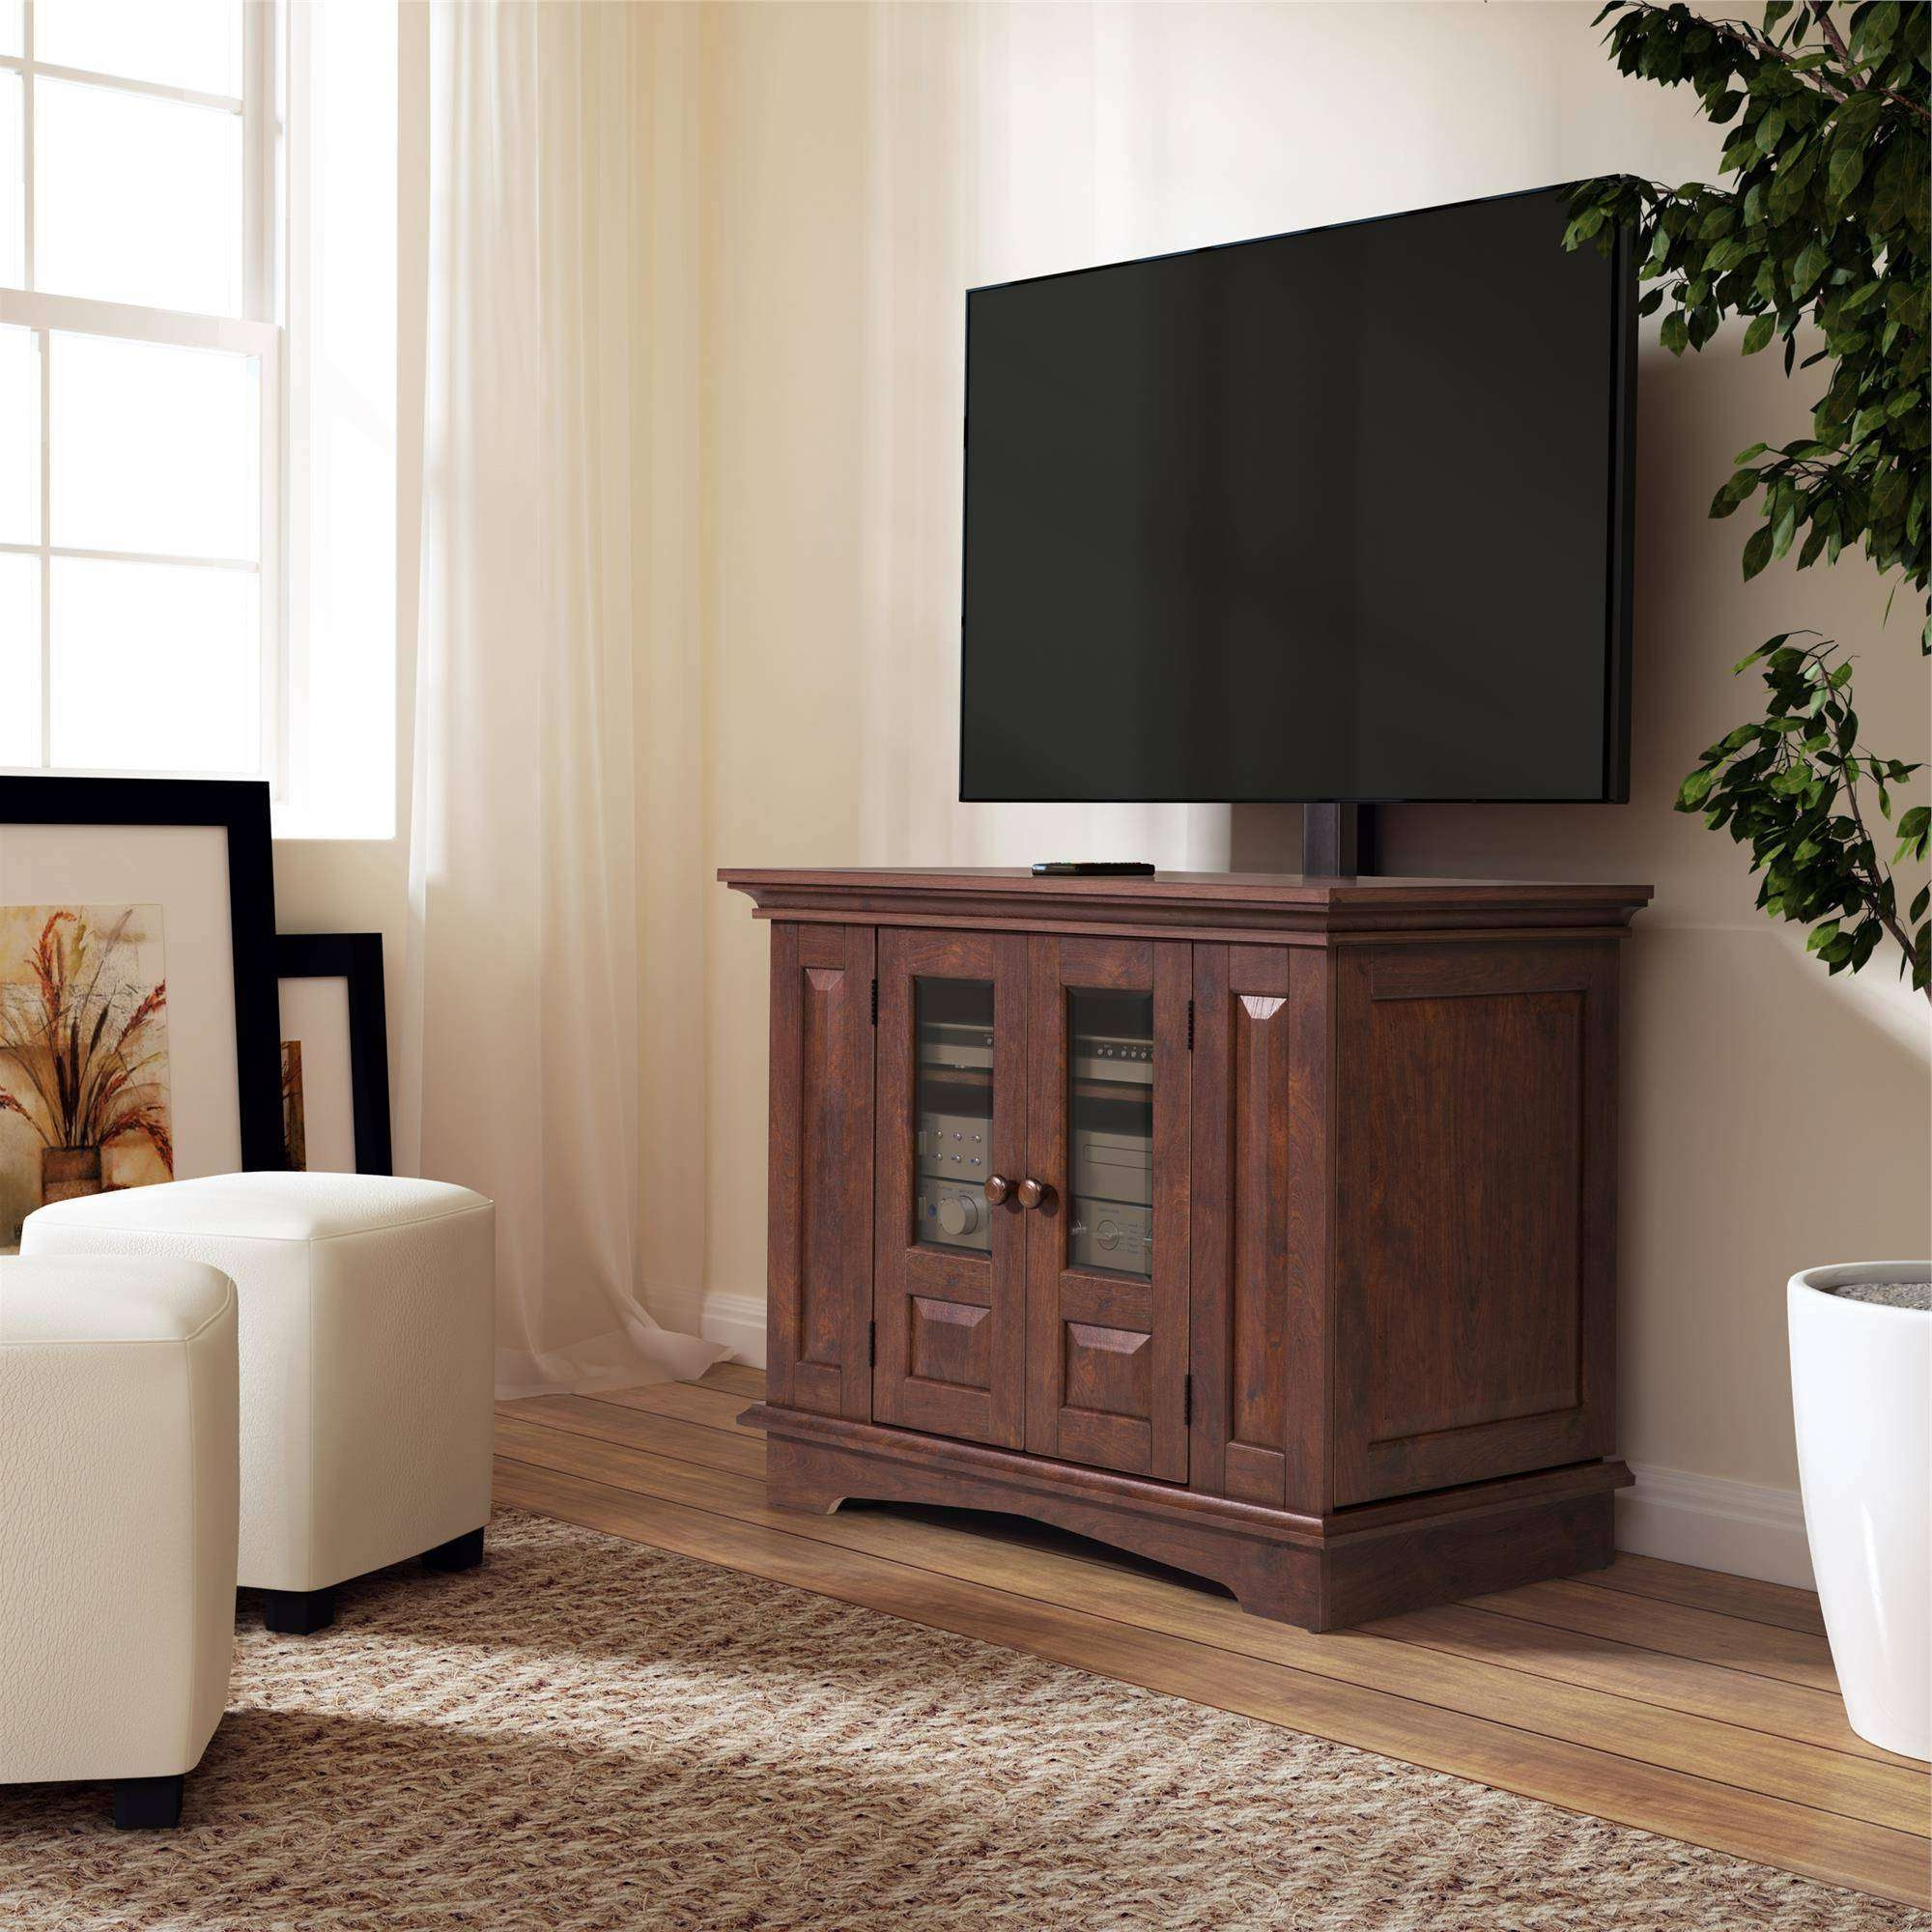 Willow Mountain Cherry Tv Stand With Mount, For Tvs Up To 37 With Wood Tv Stands With Swivel Mount (View 12 of 15)